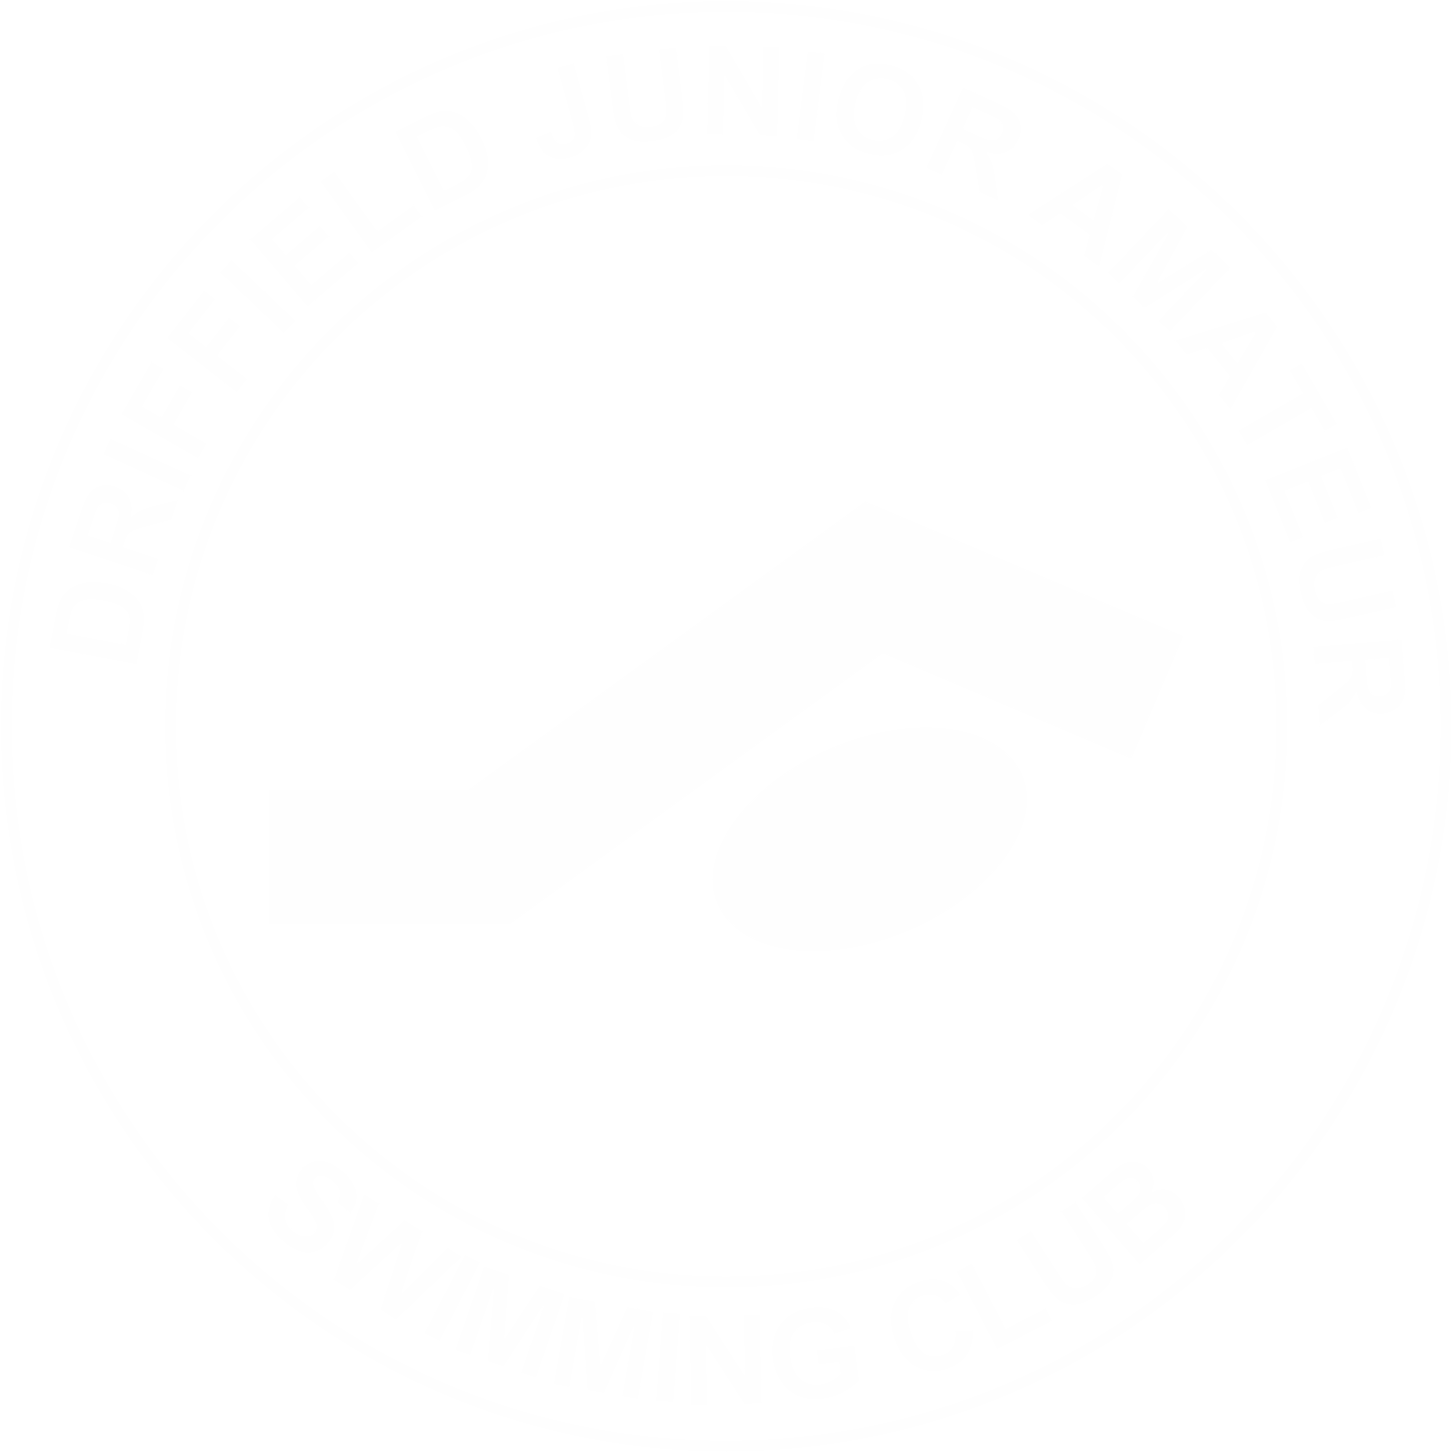 Driffield Junior Amateur Swimming Club